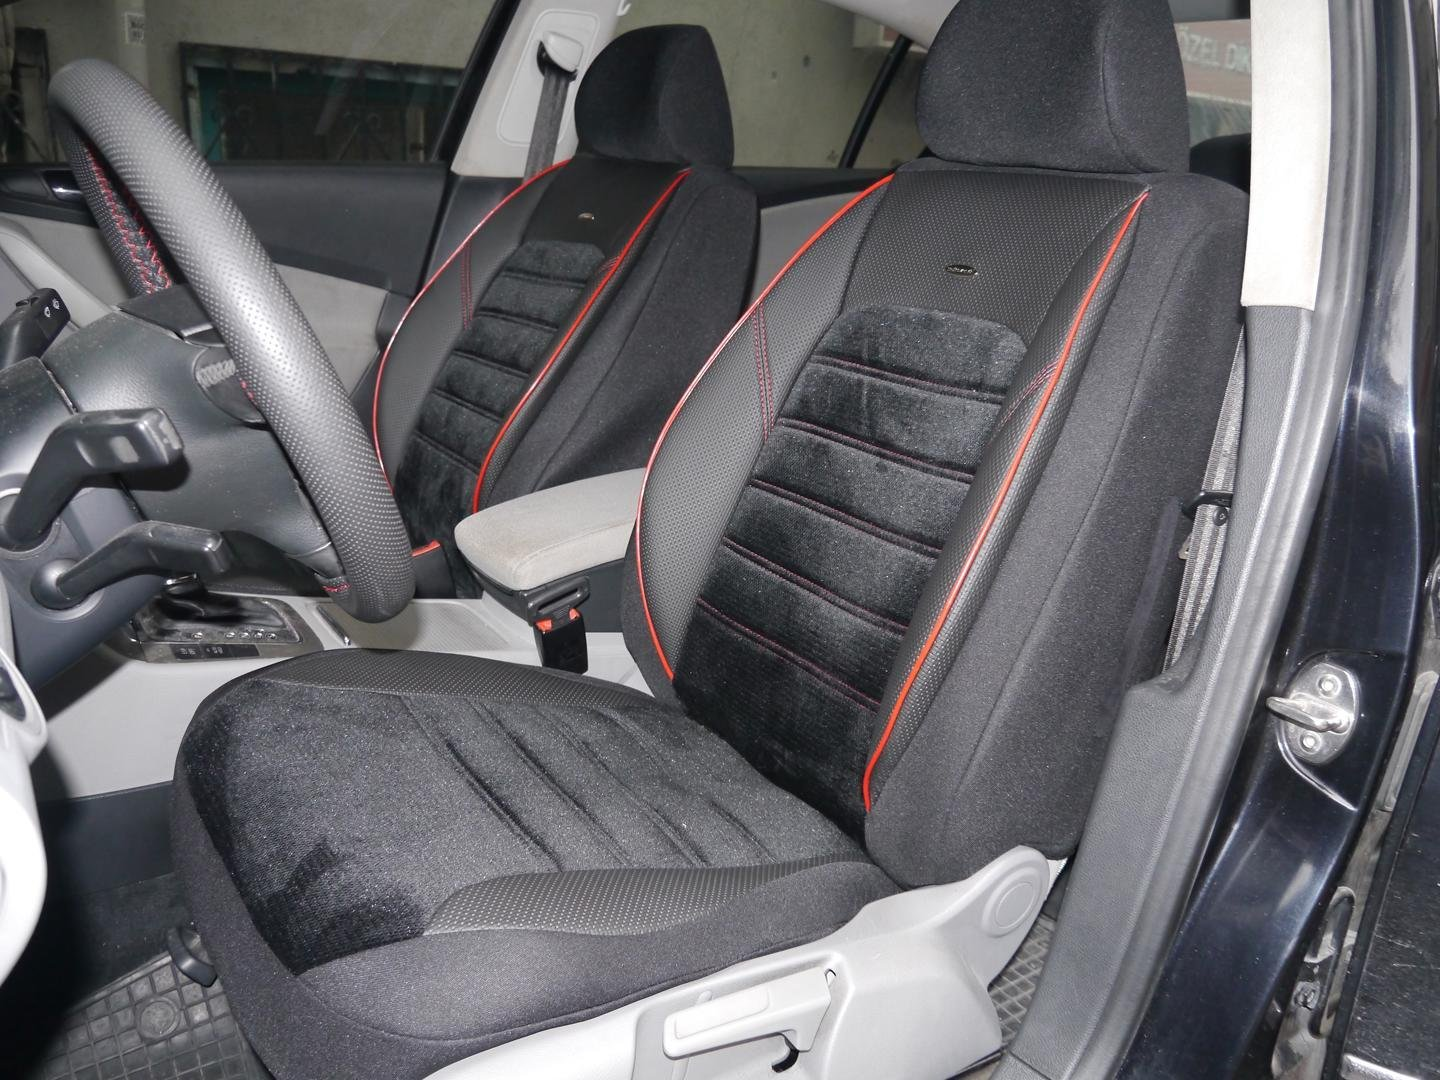 Car Seat Covers Protectors For Alfa Romeo Giulietta No - Alfa romeo seat covers